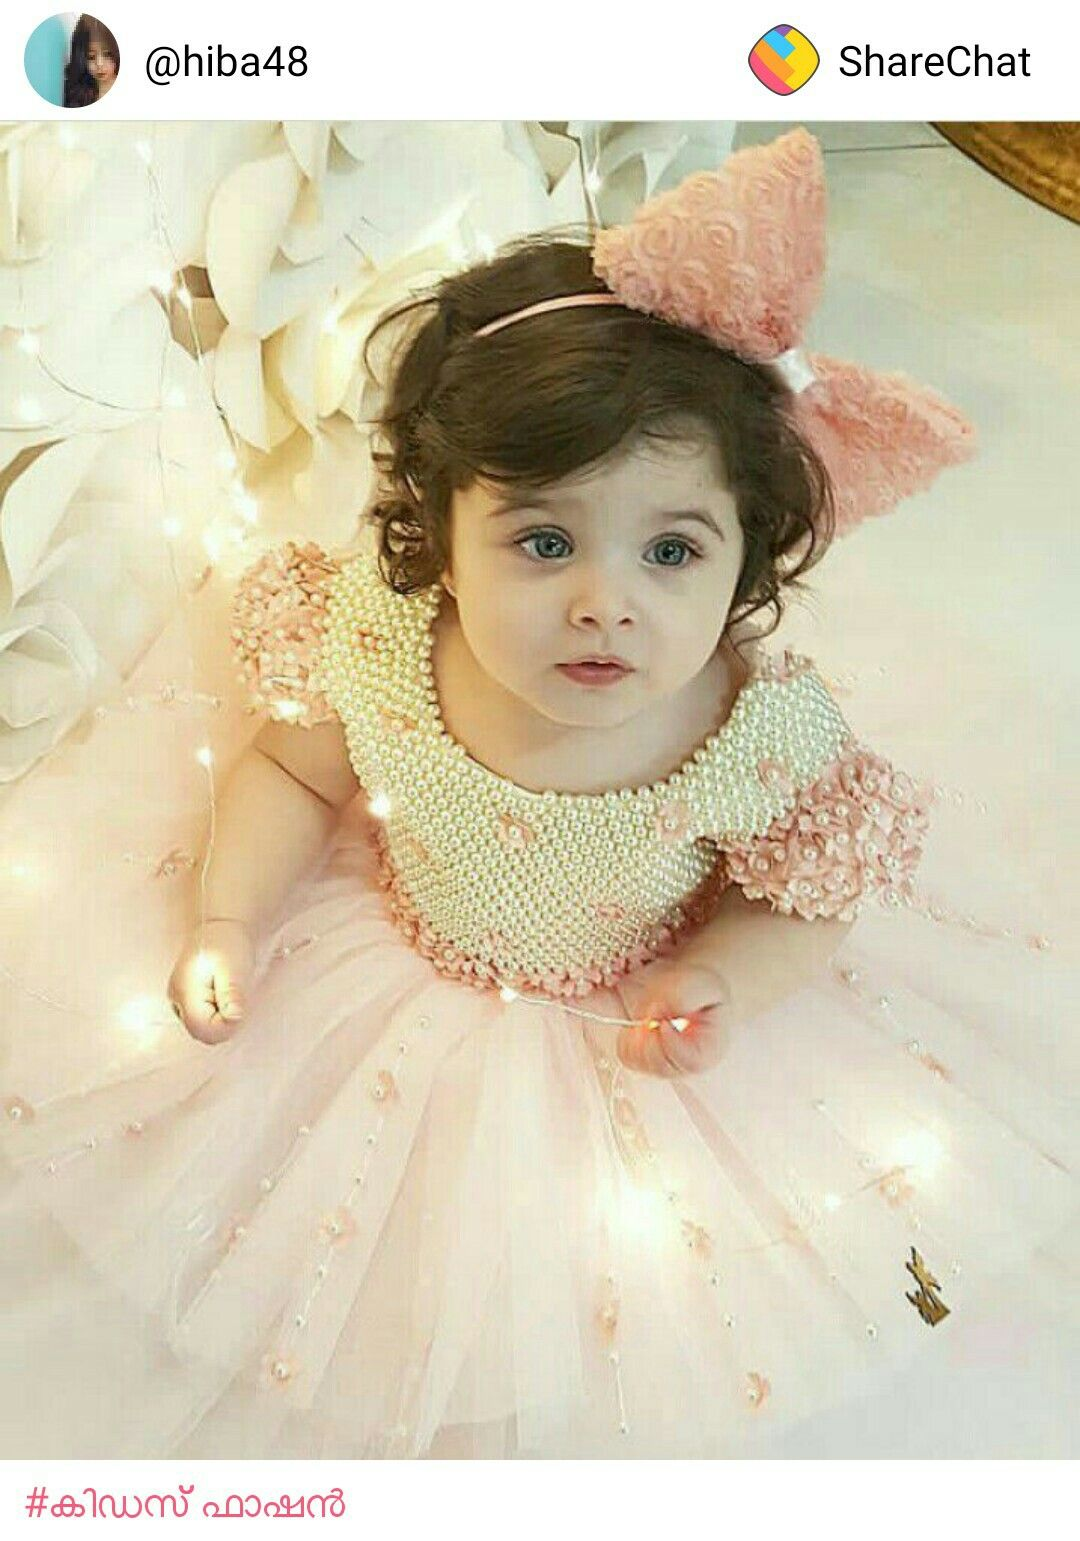 Cute Baby Cute Baby Dresses Cute Baby Girl Images Wedding Dresses For Kids